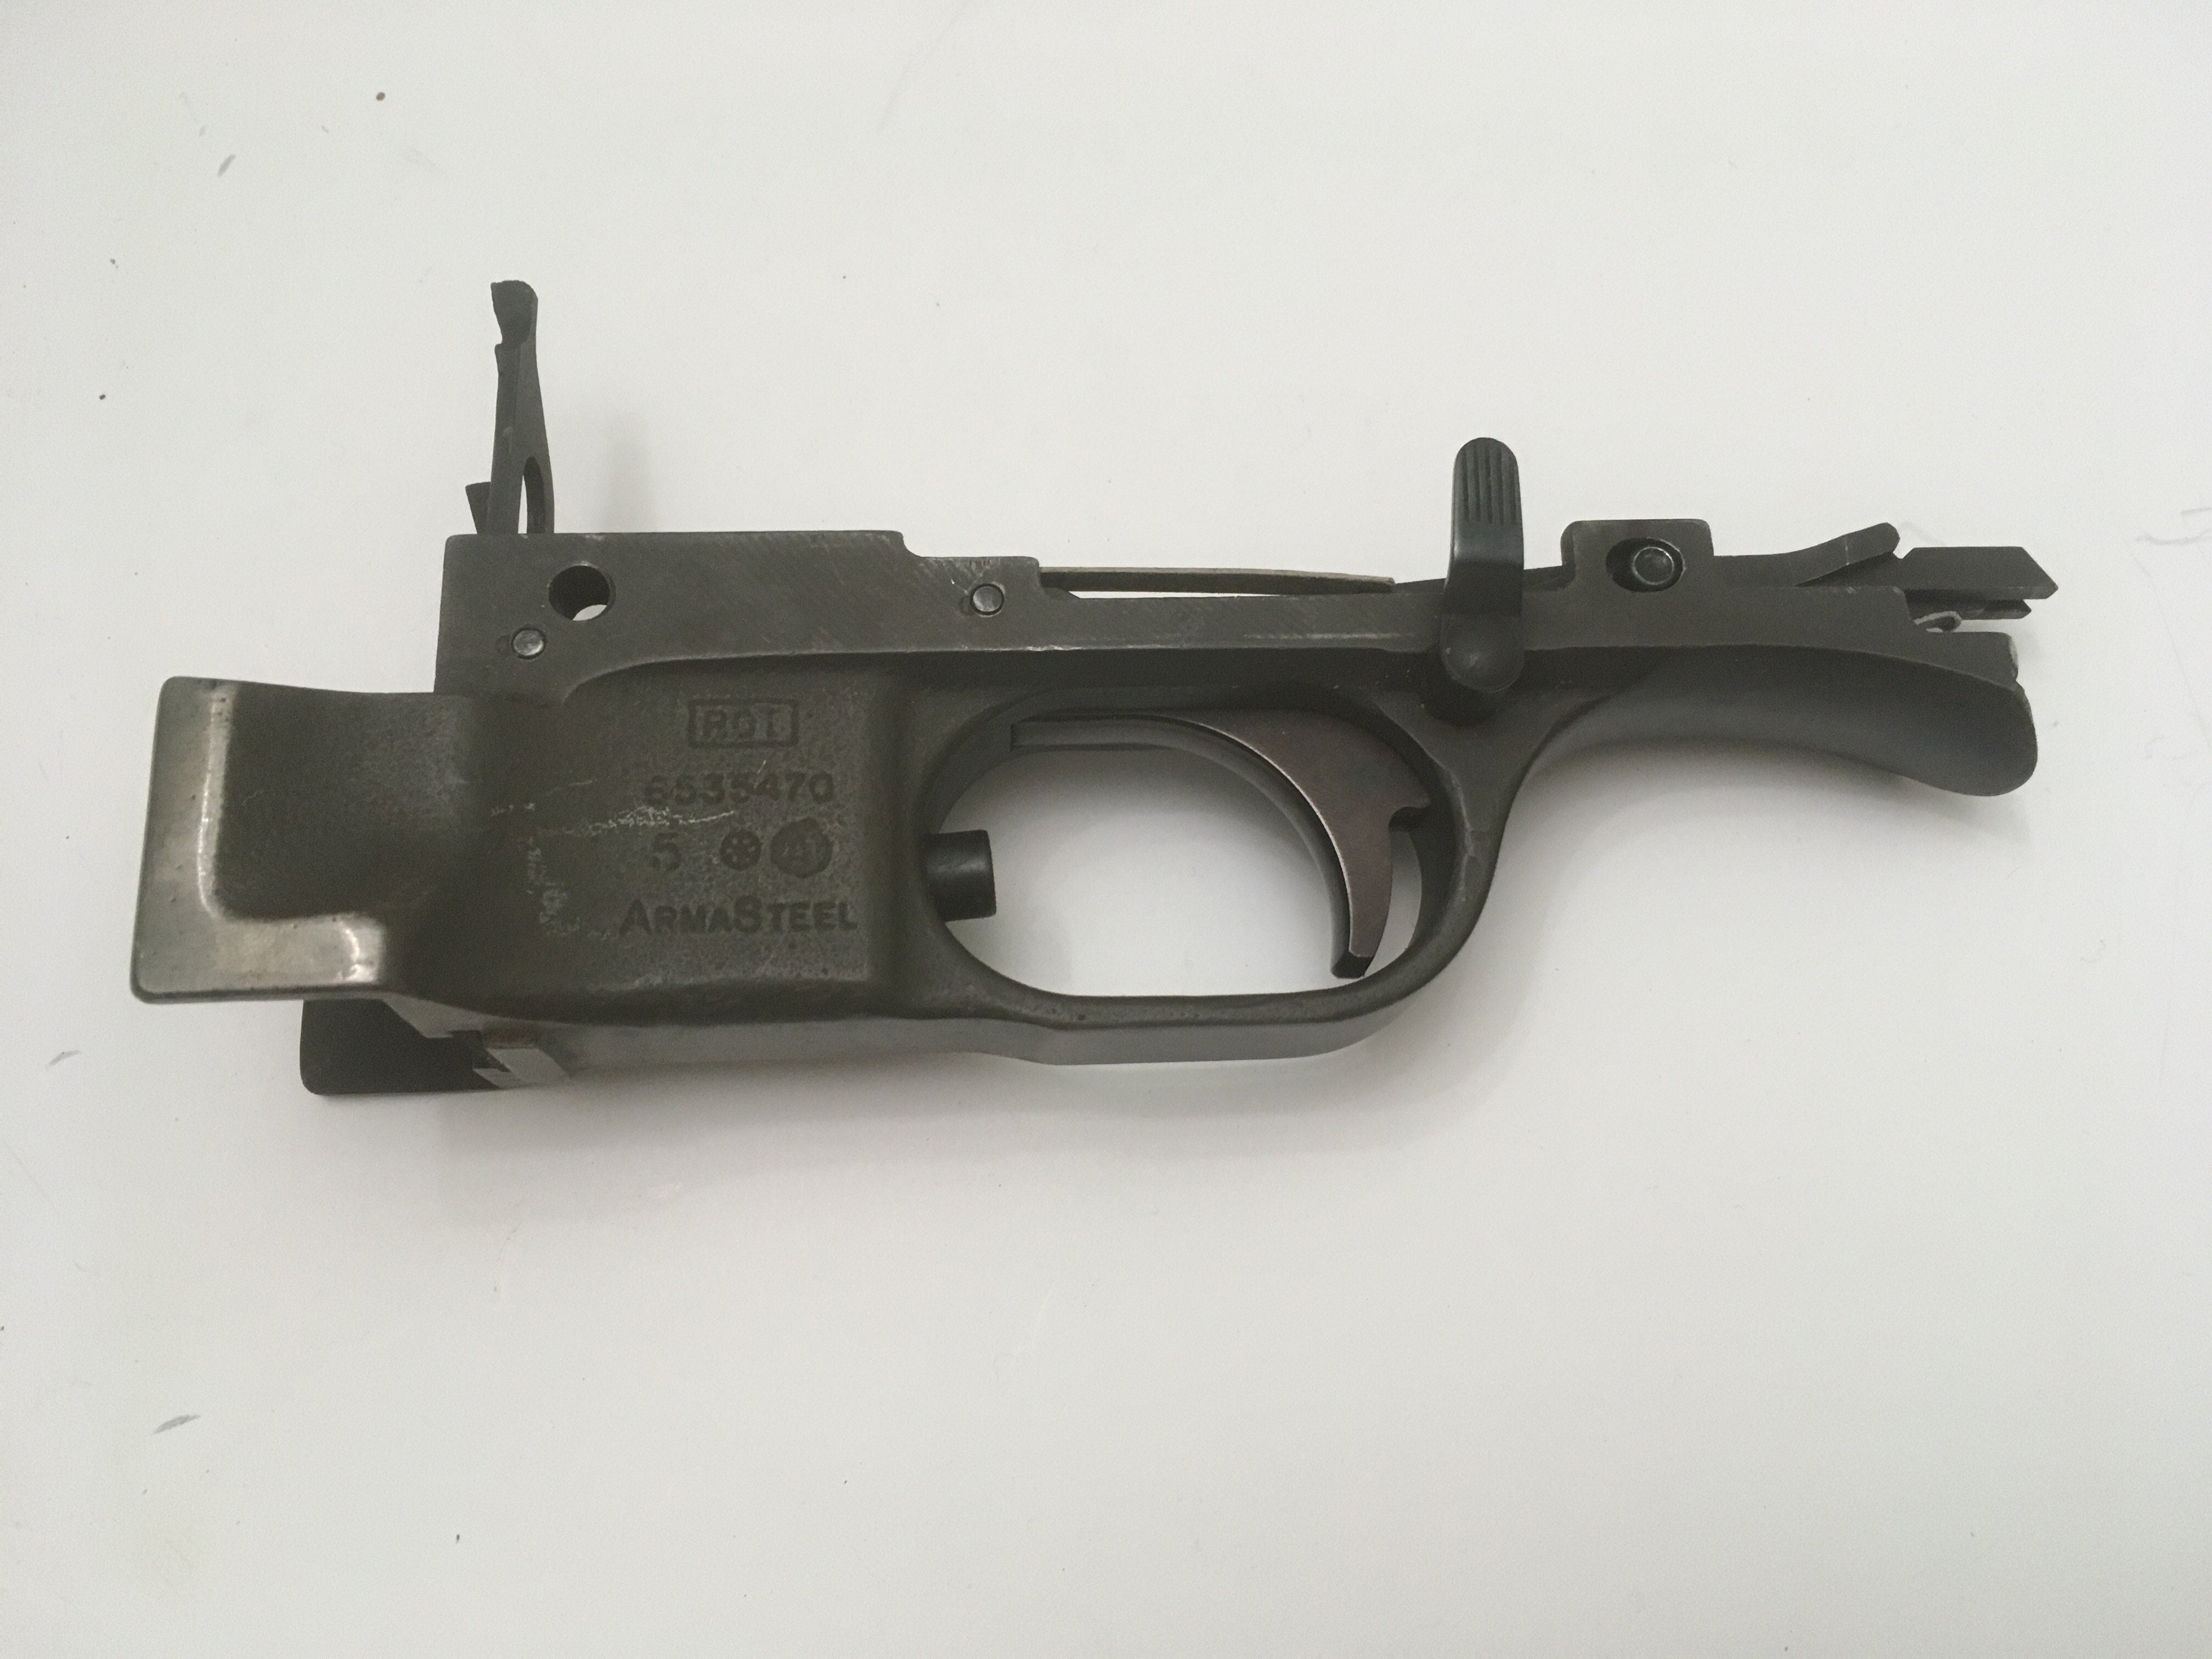 ROT Armasteel trigger group; very good condition